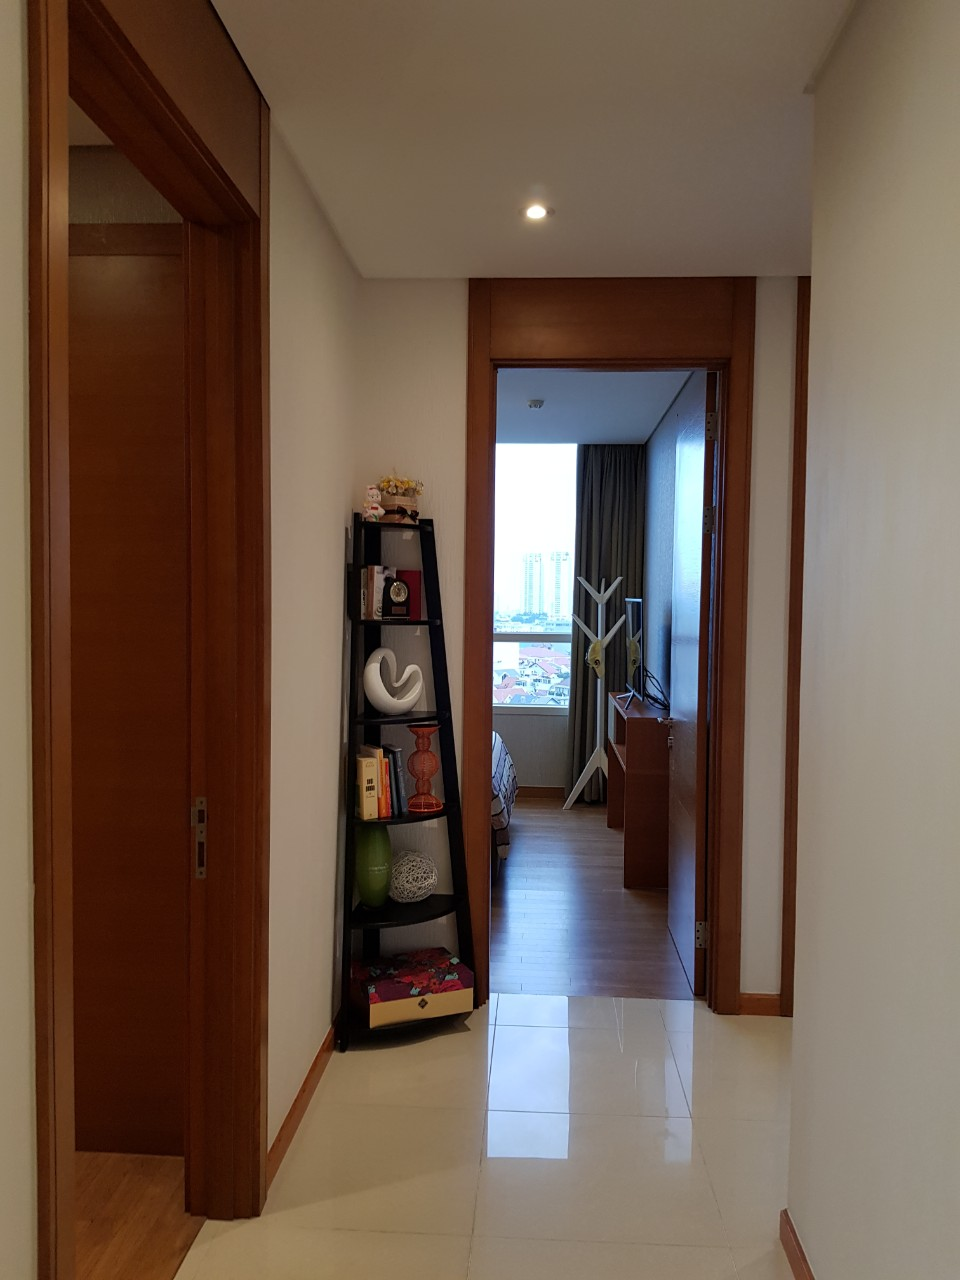 Xi Apartment Nice Furniture Good View in Thao Dien D206096 (5)